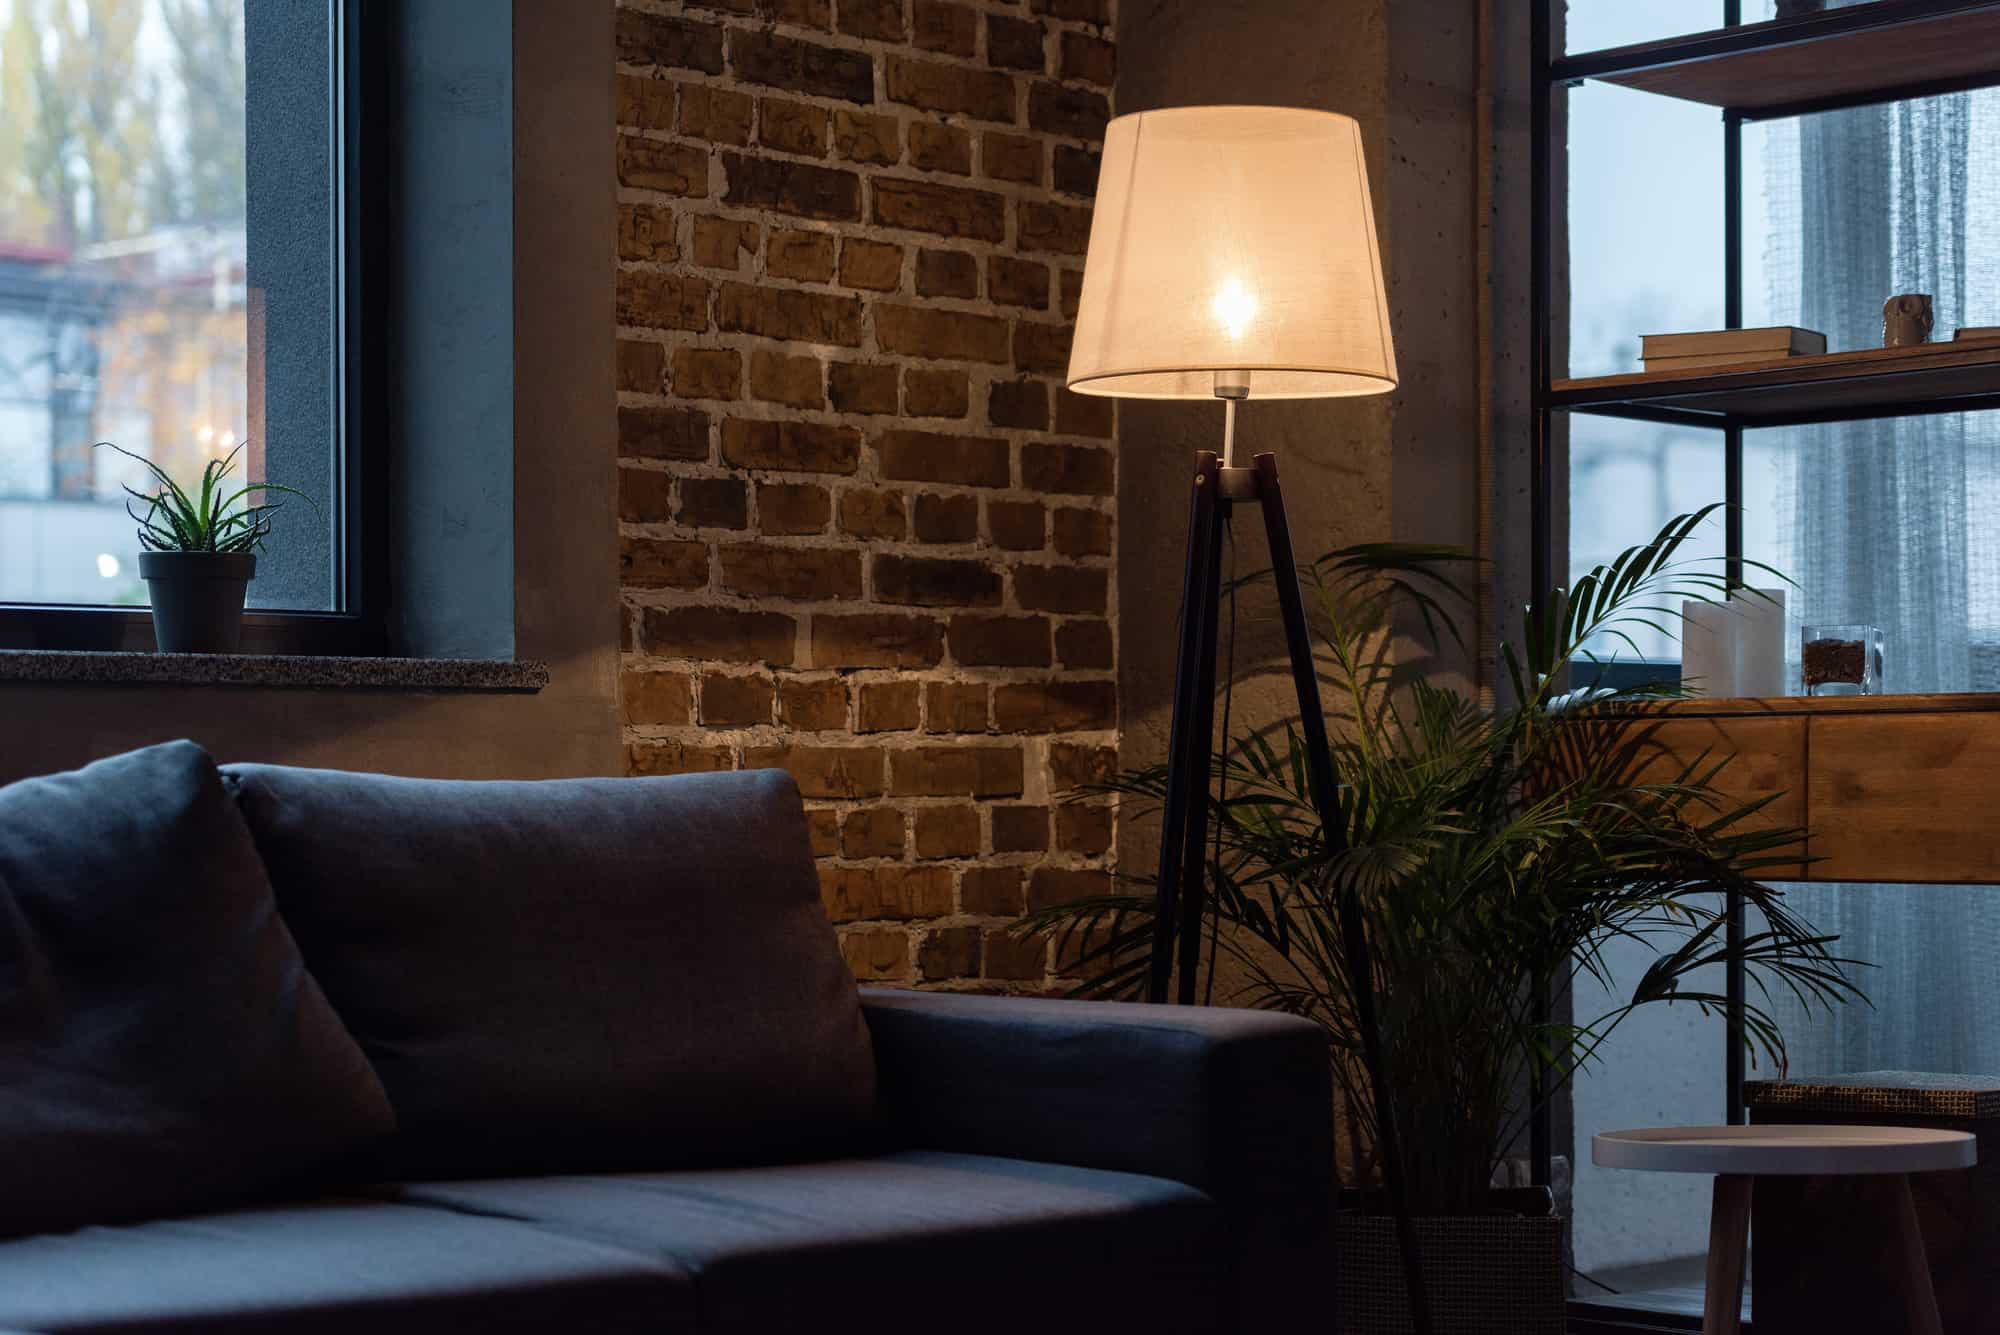 sofa against a brick wall with a light